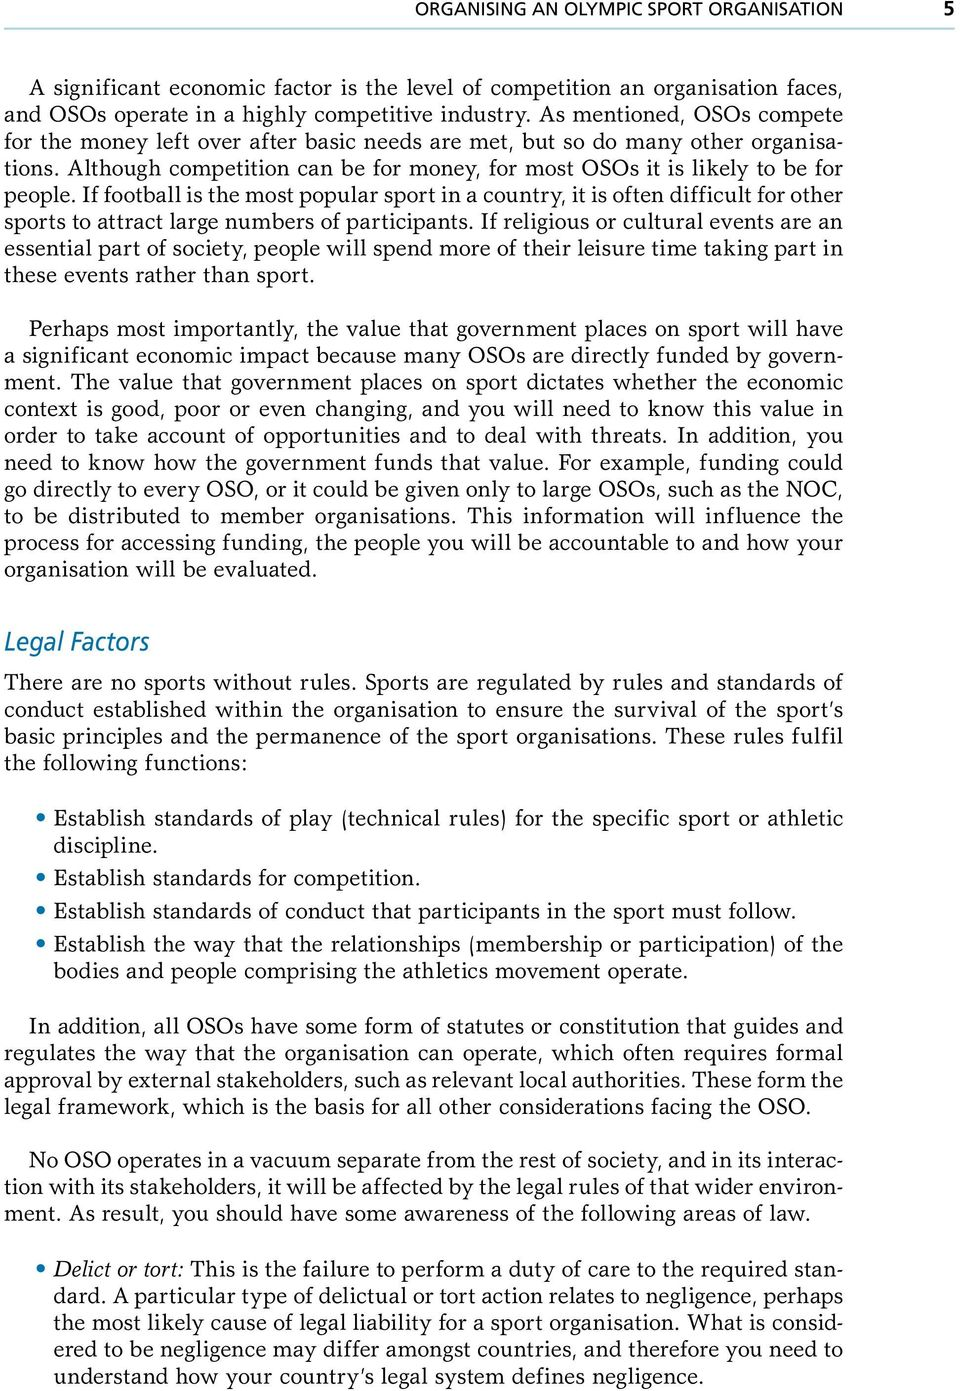 legal factors in sport